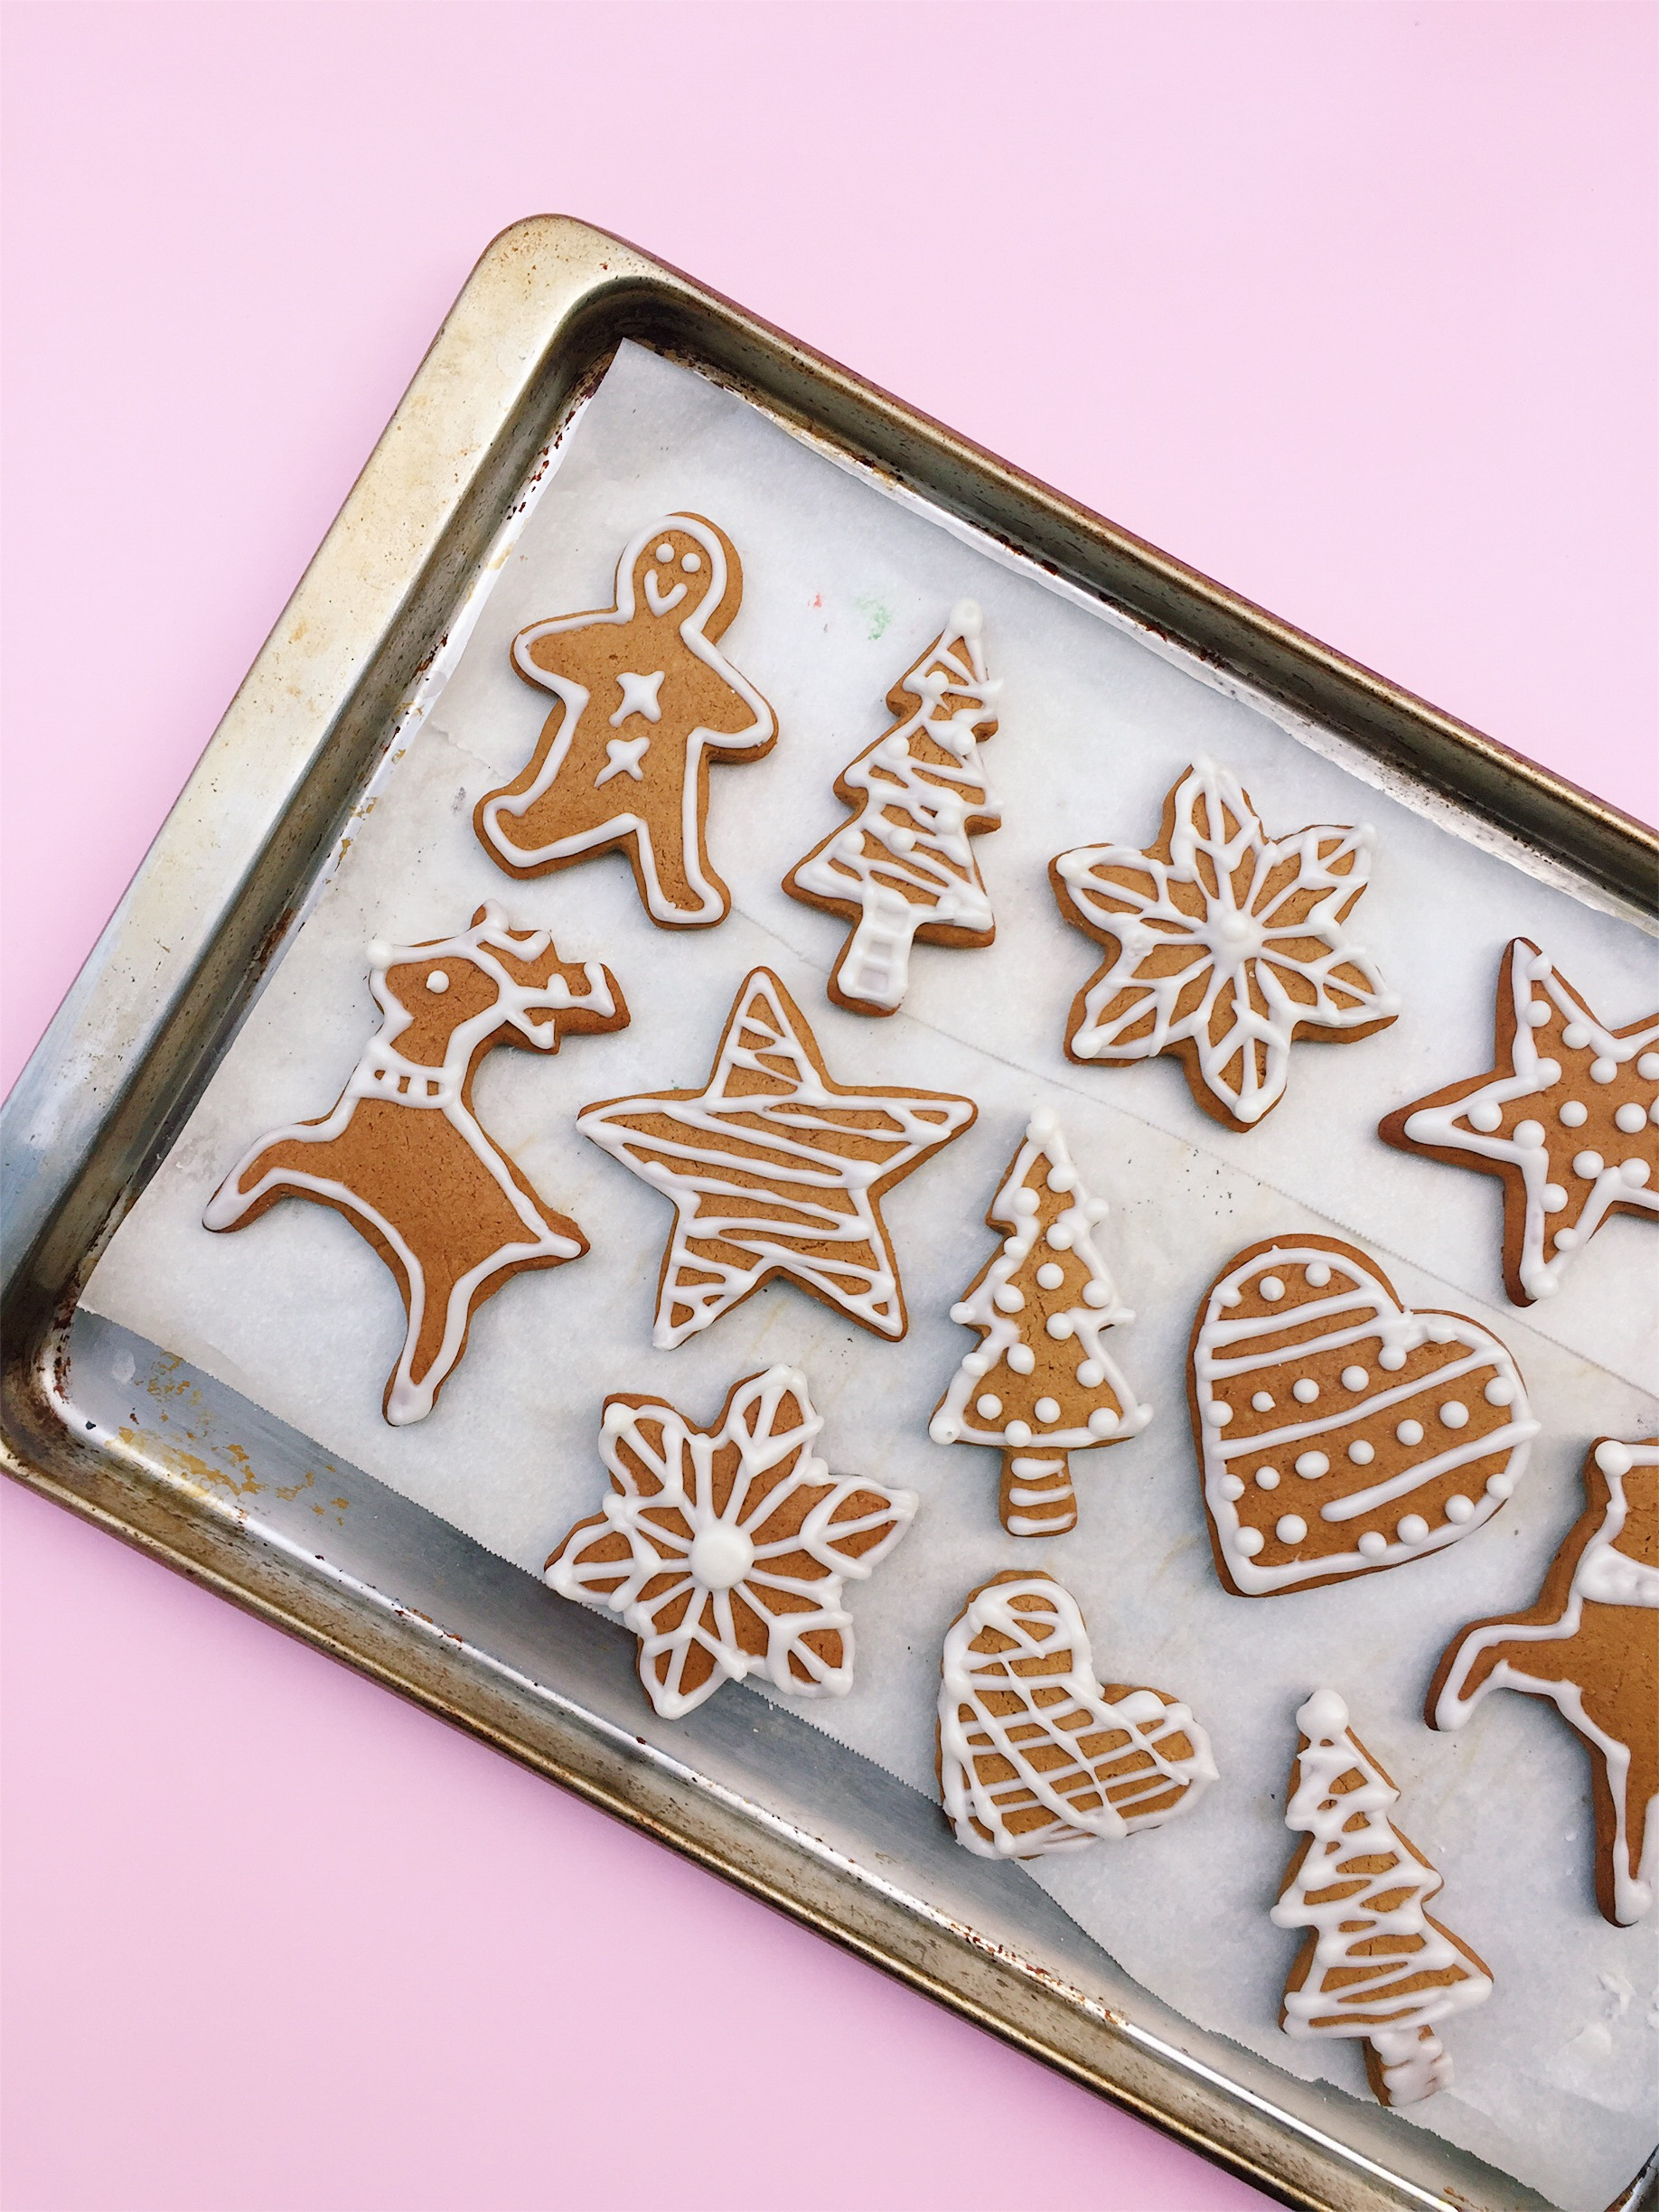 amy_chen_design_2018_highlight_reel_14_gingerbread_cookies.jpeg